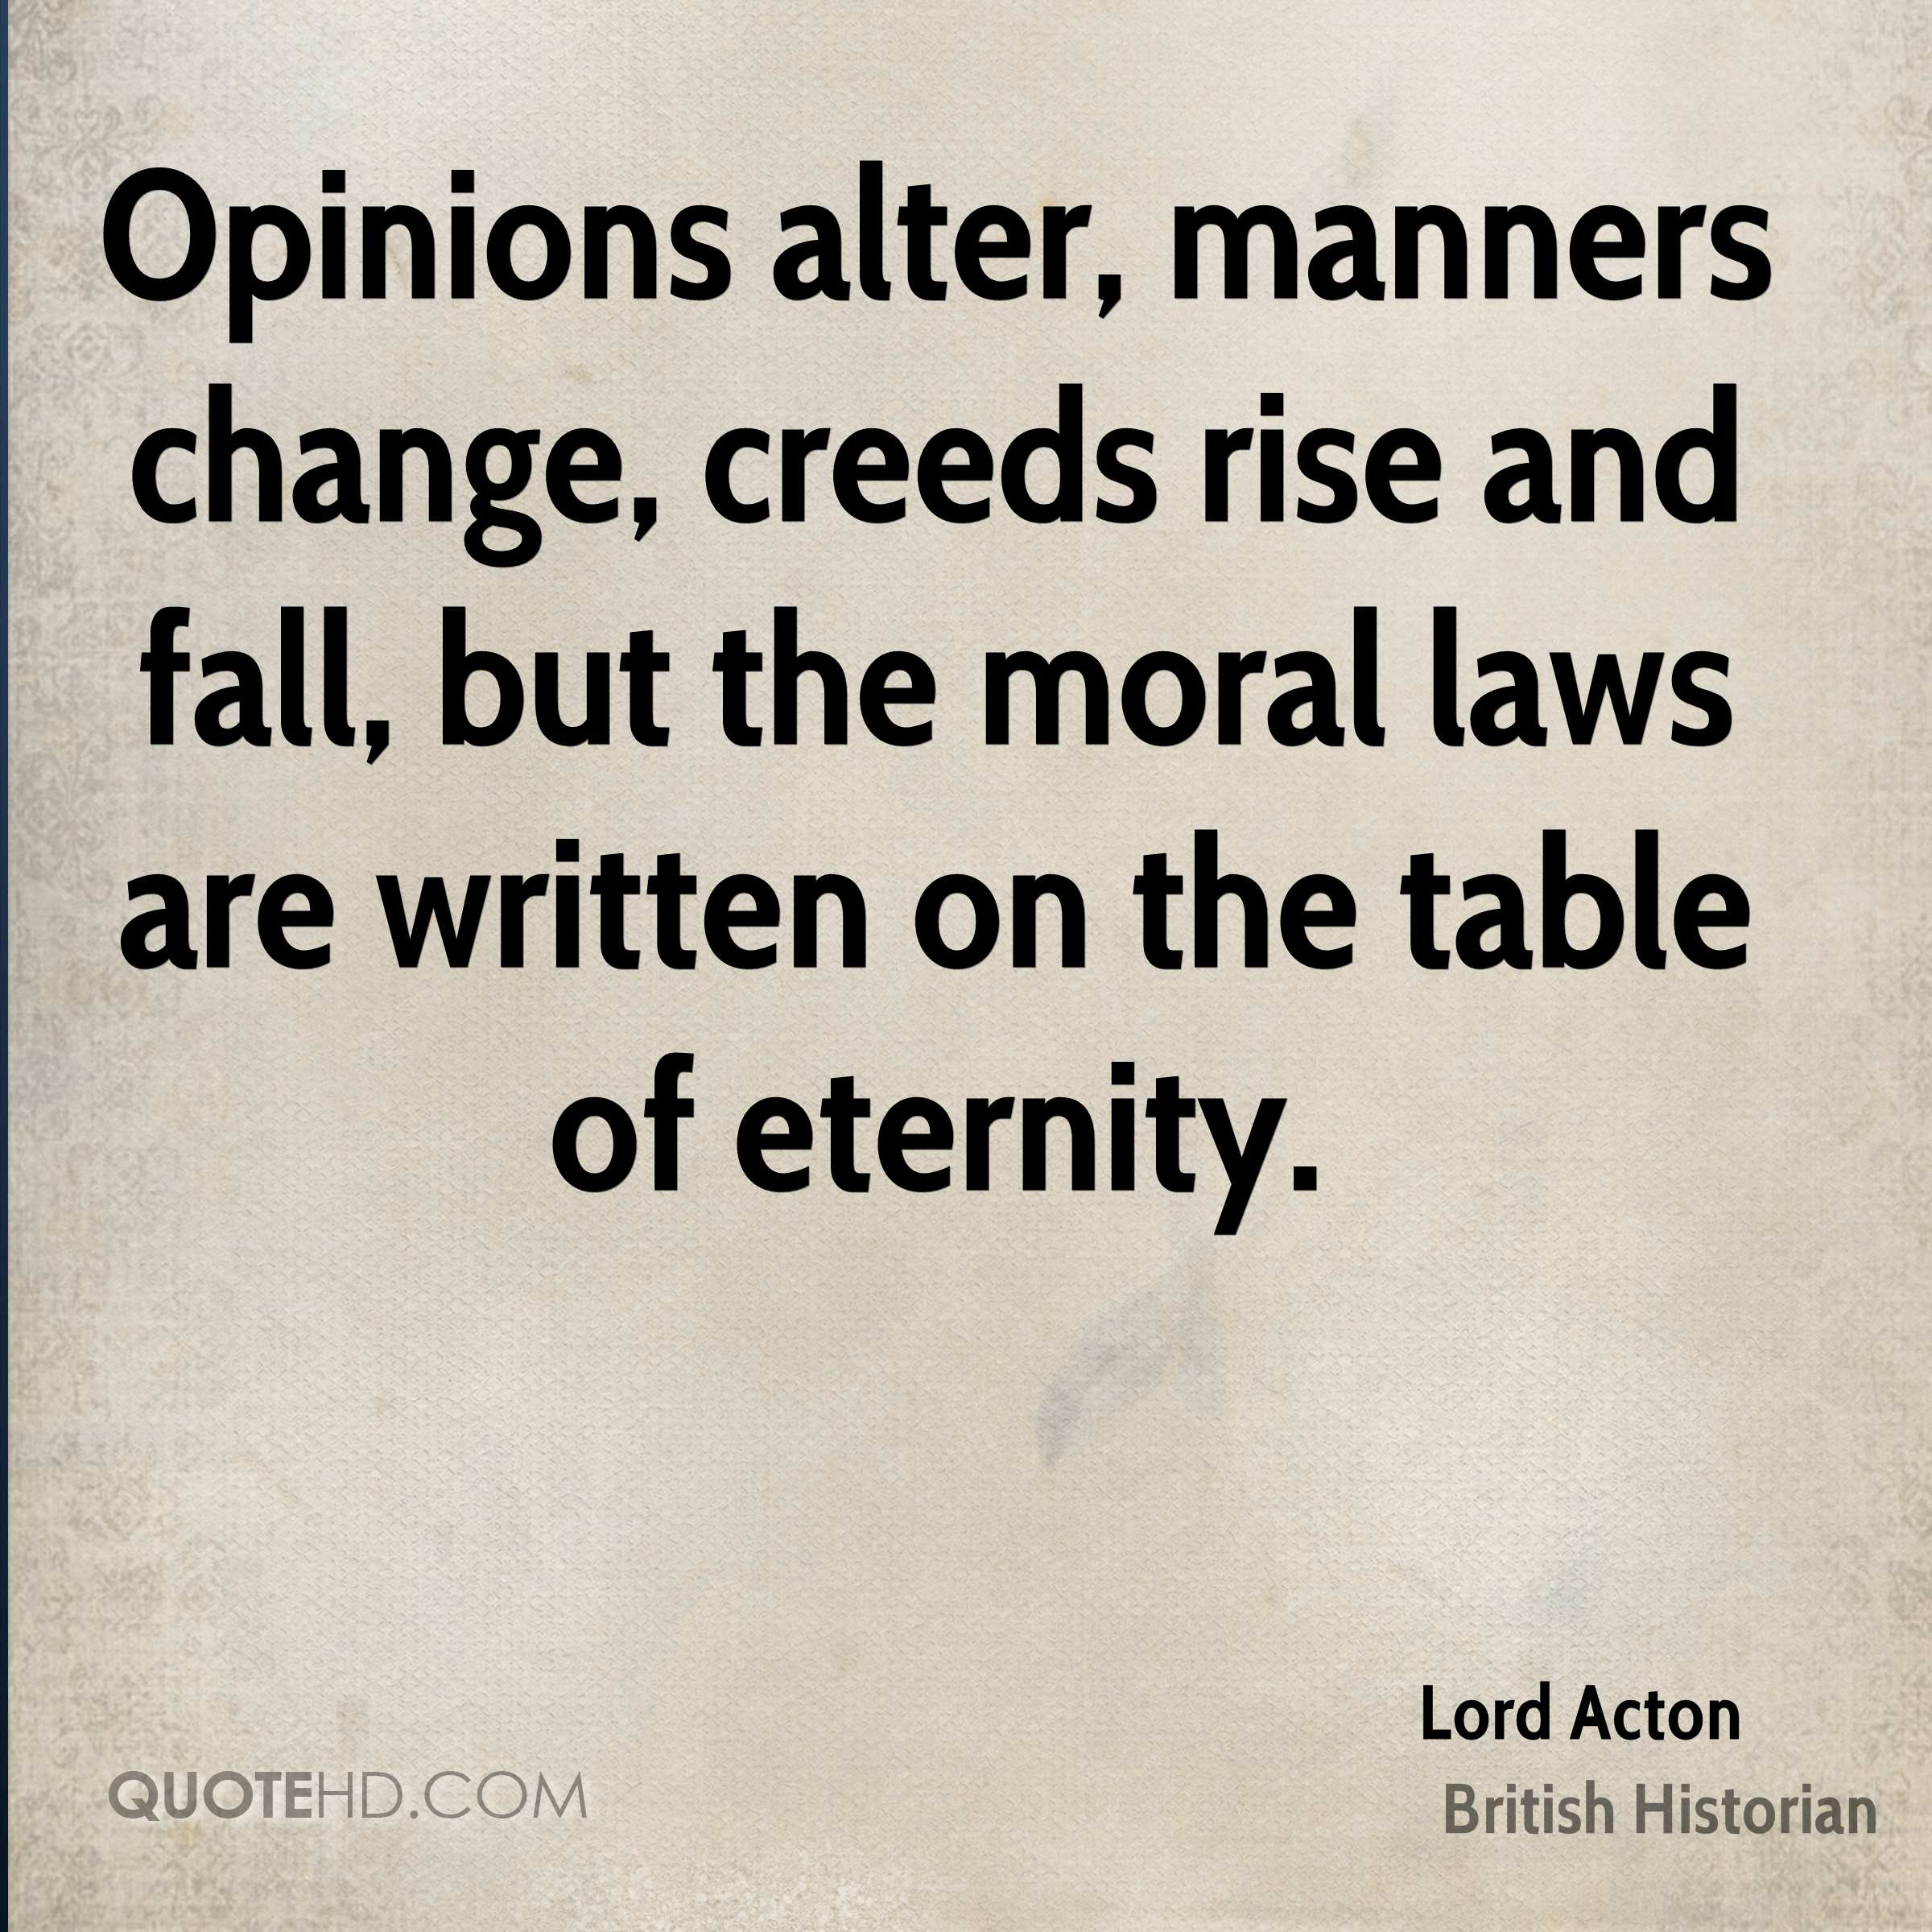 Lord Acton Change Quotes   QuoteHD